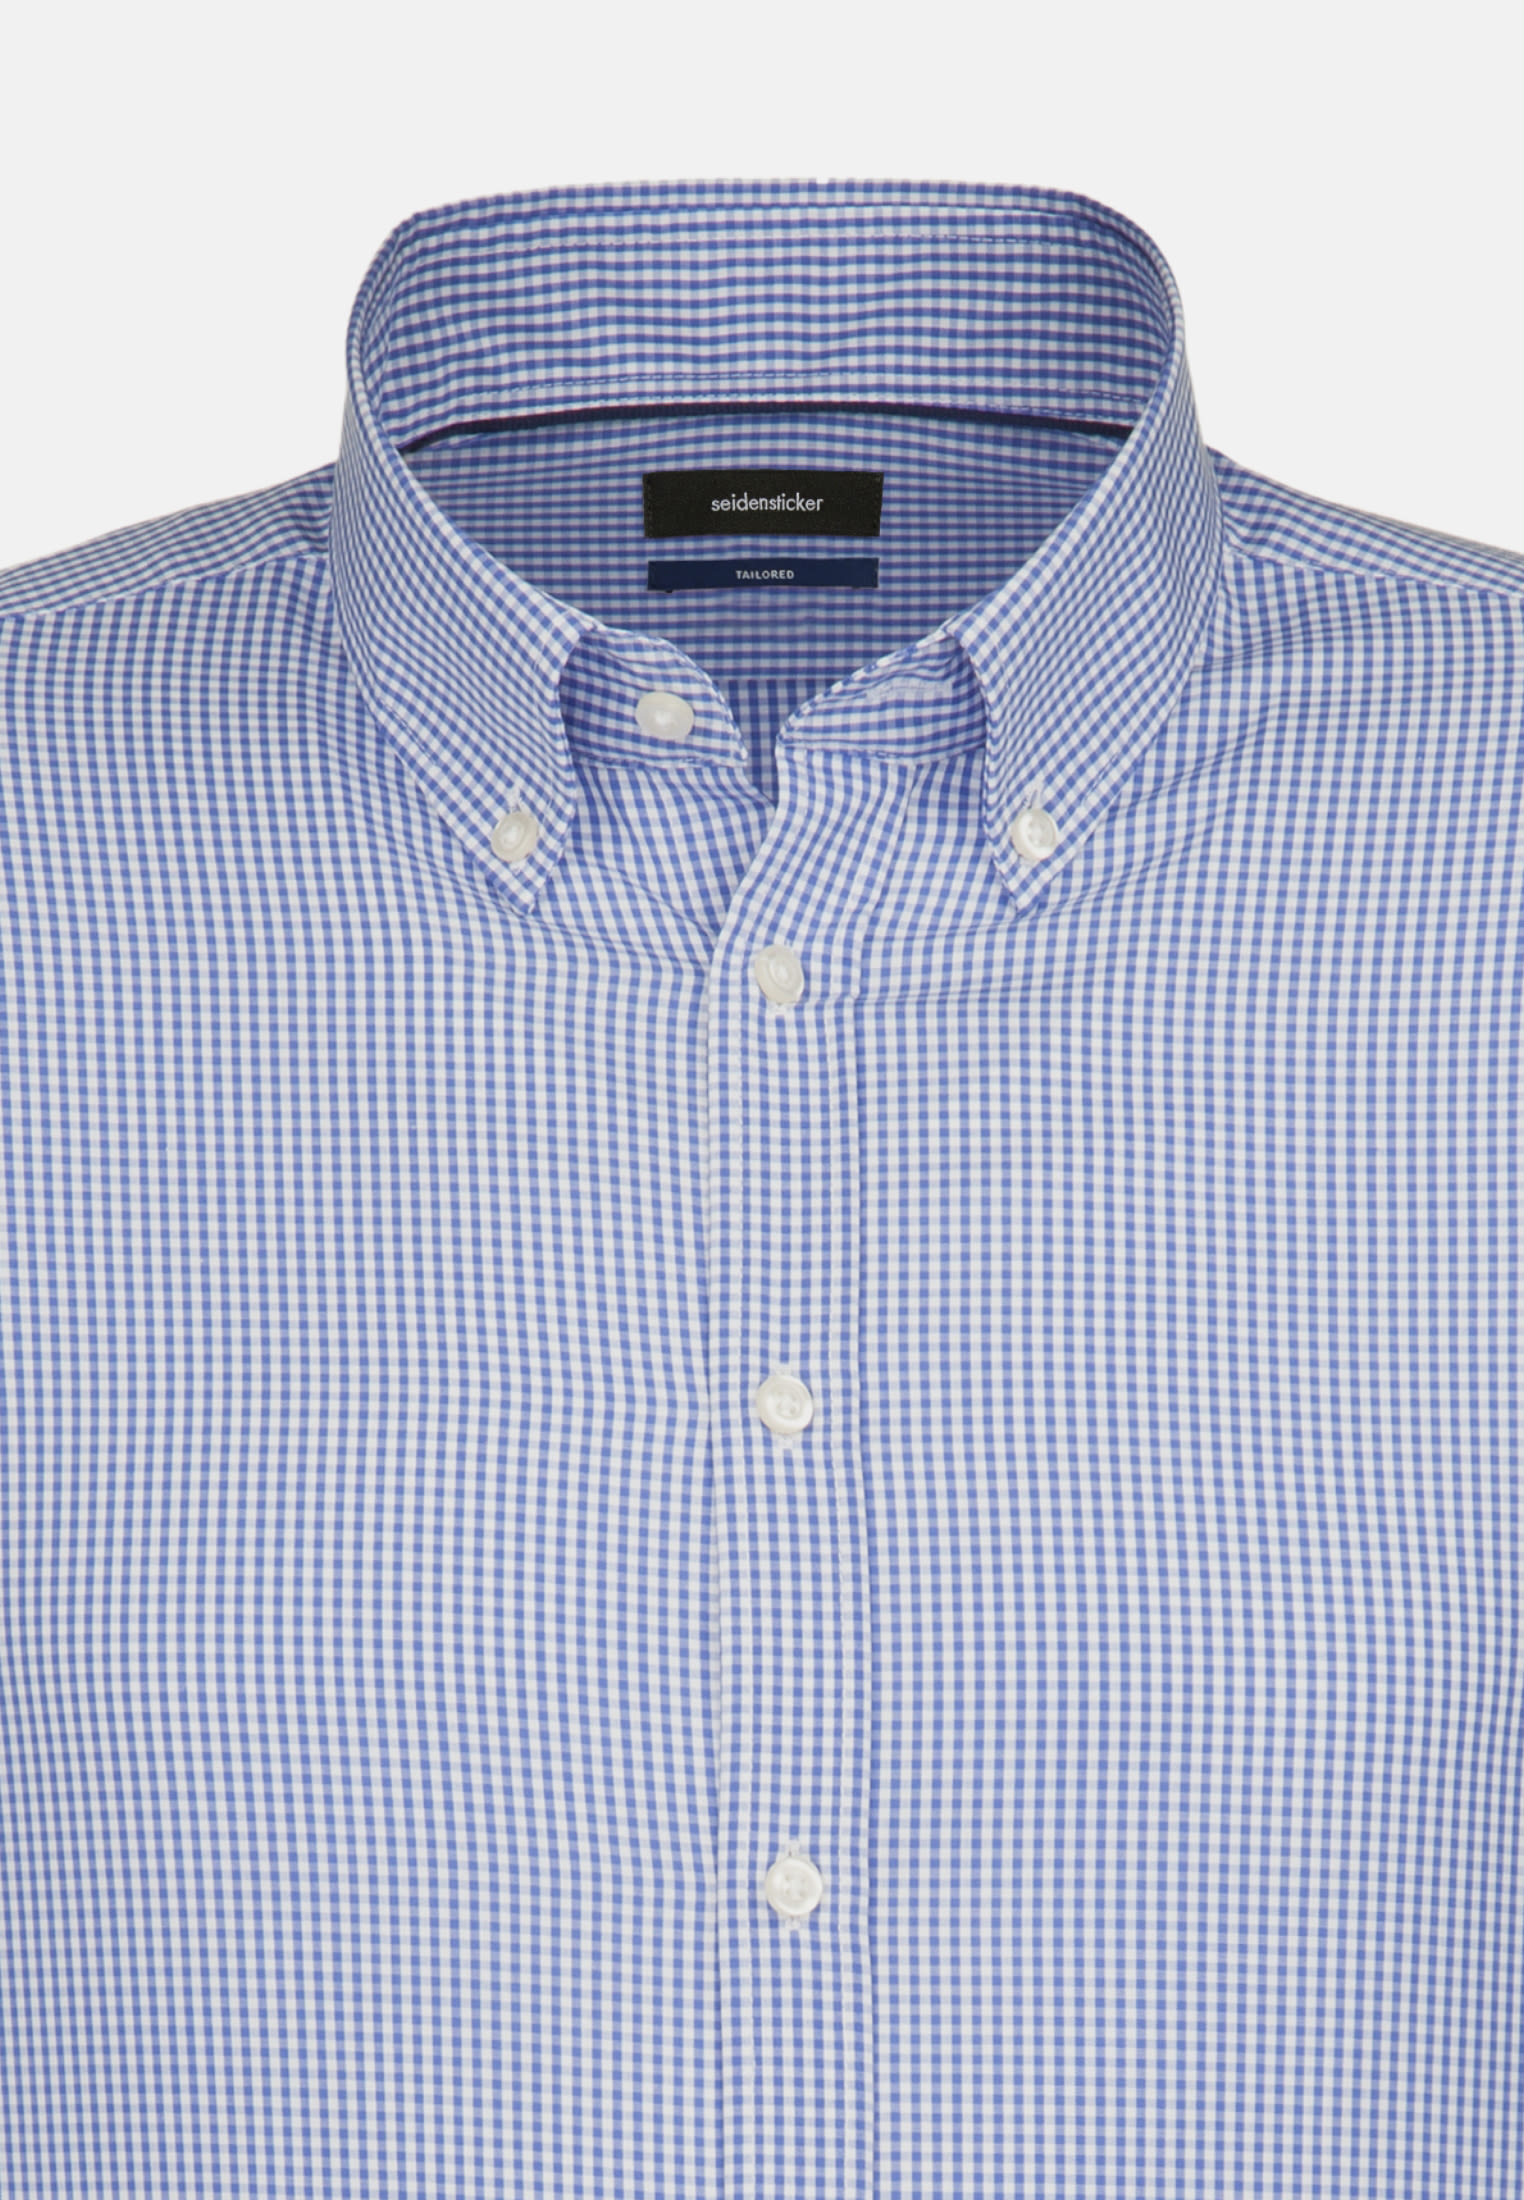 Bügelfreies Popeline Business Hemd in Tailored mit Button-Down-Kragen in Dunkelblau |  Seidensticker Onlineshop